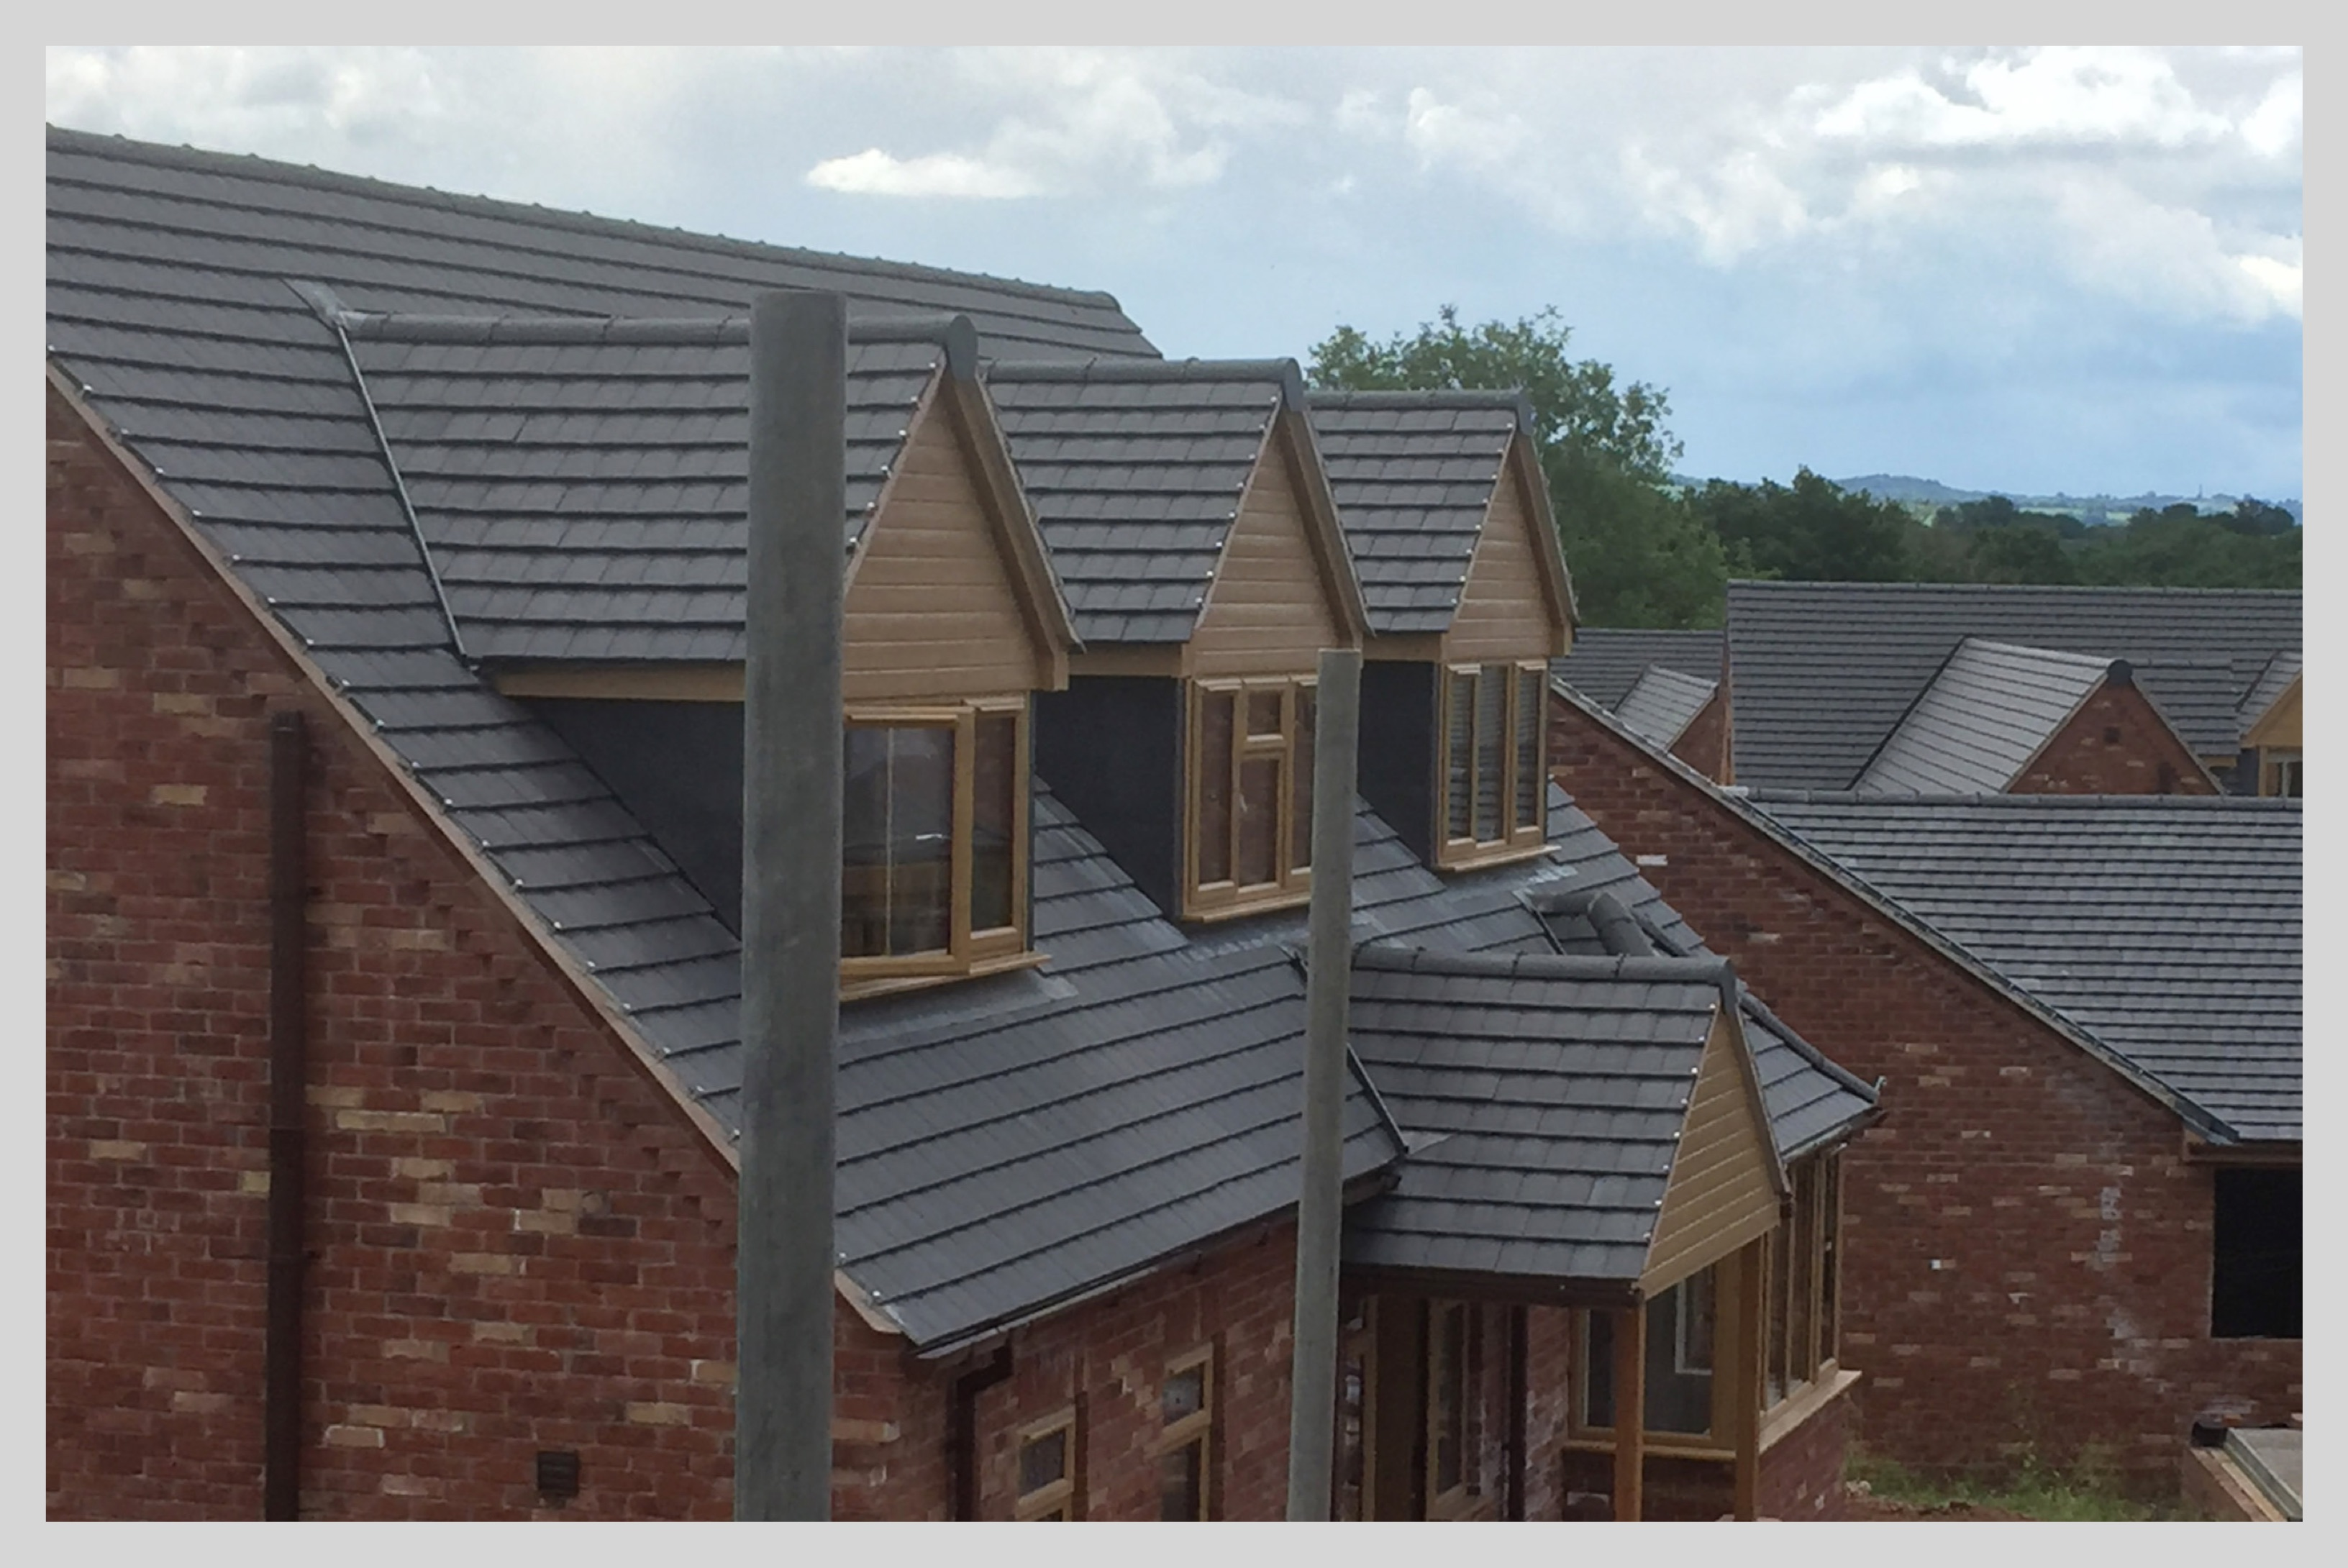 Completed new build housing estate in Shropshire with all roofs tiled by Wyvern Roofing & Tiling | Wyvern Roofing memphite.com